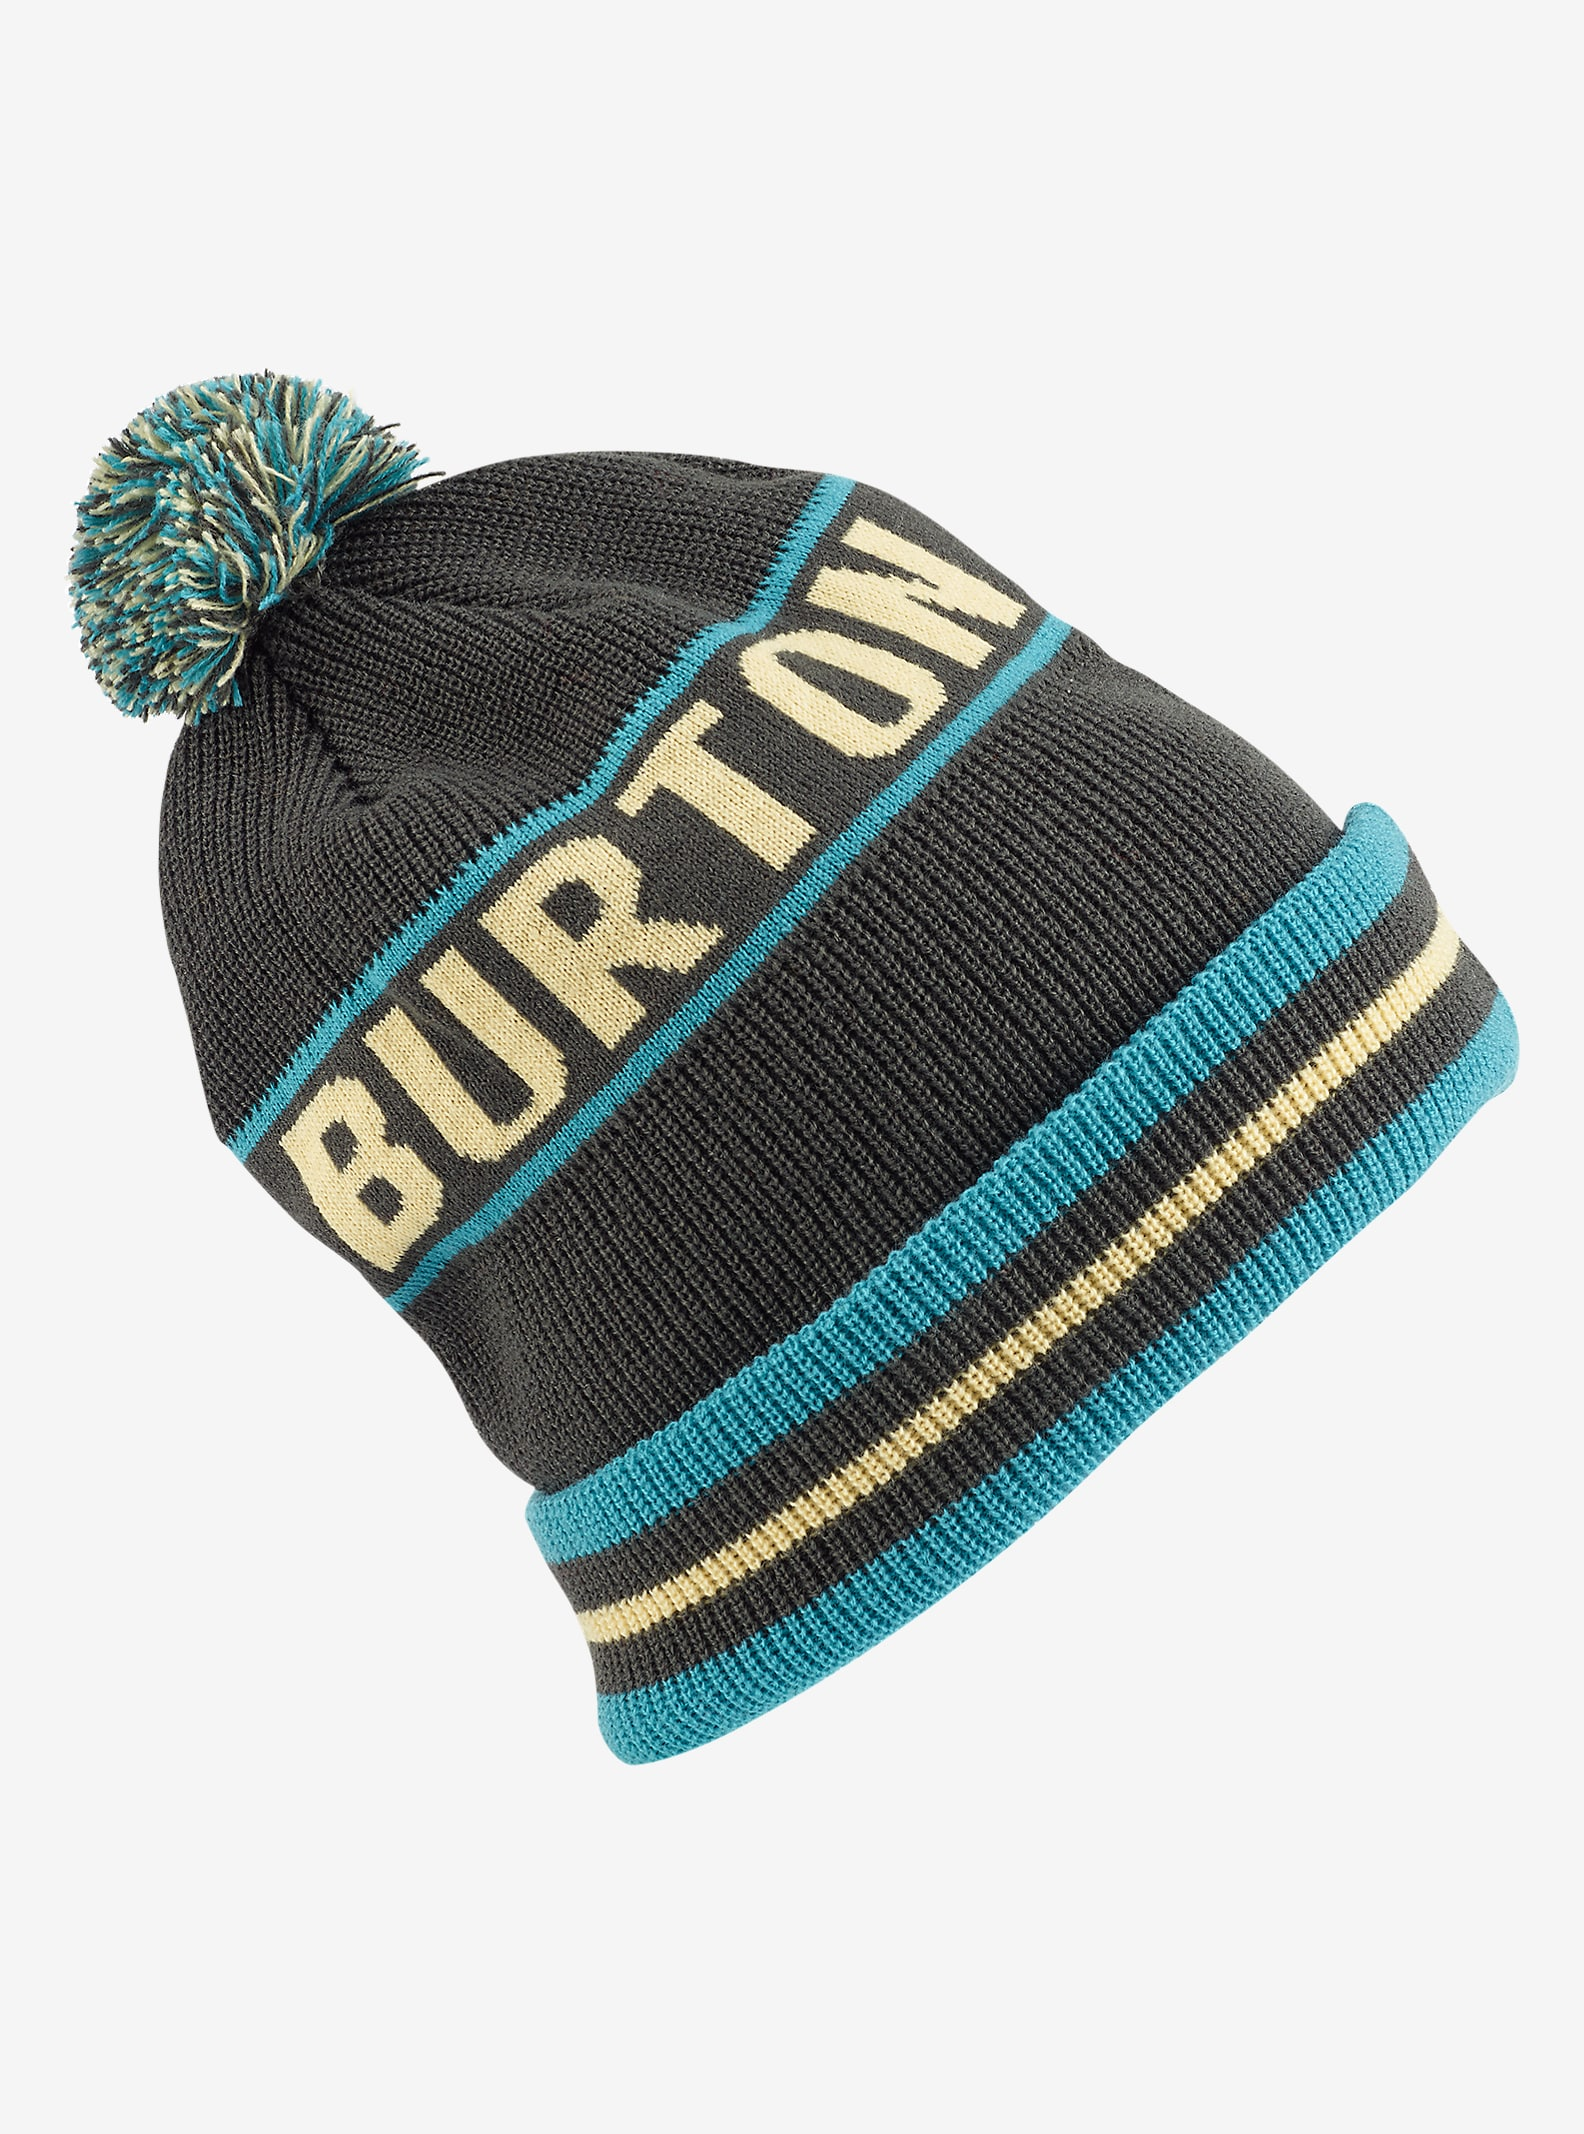 Burton Trope Beanie shown in Faded